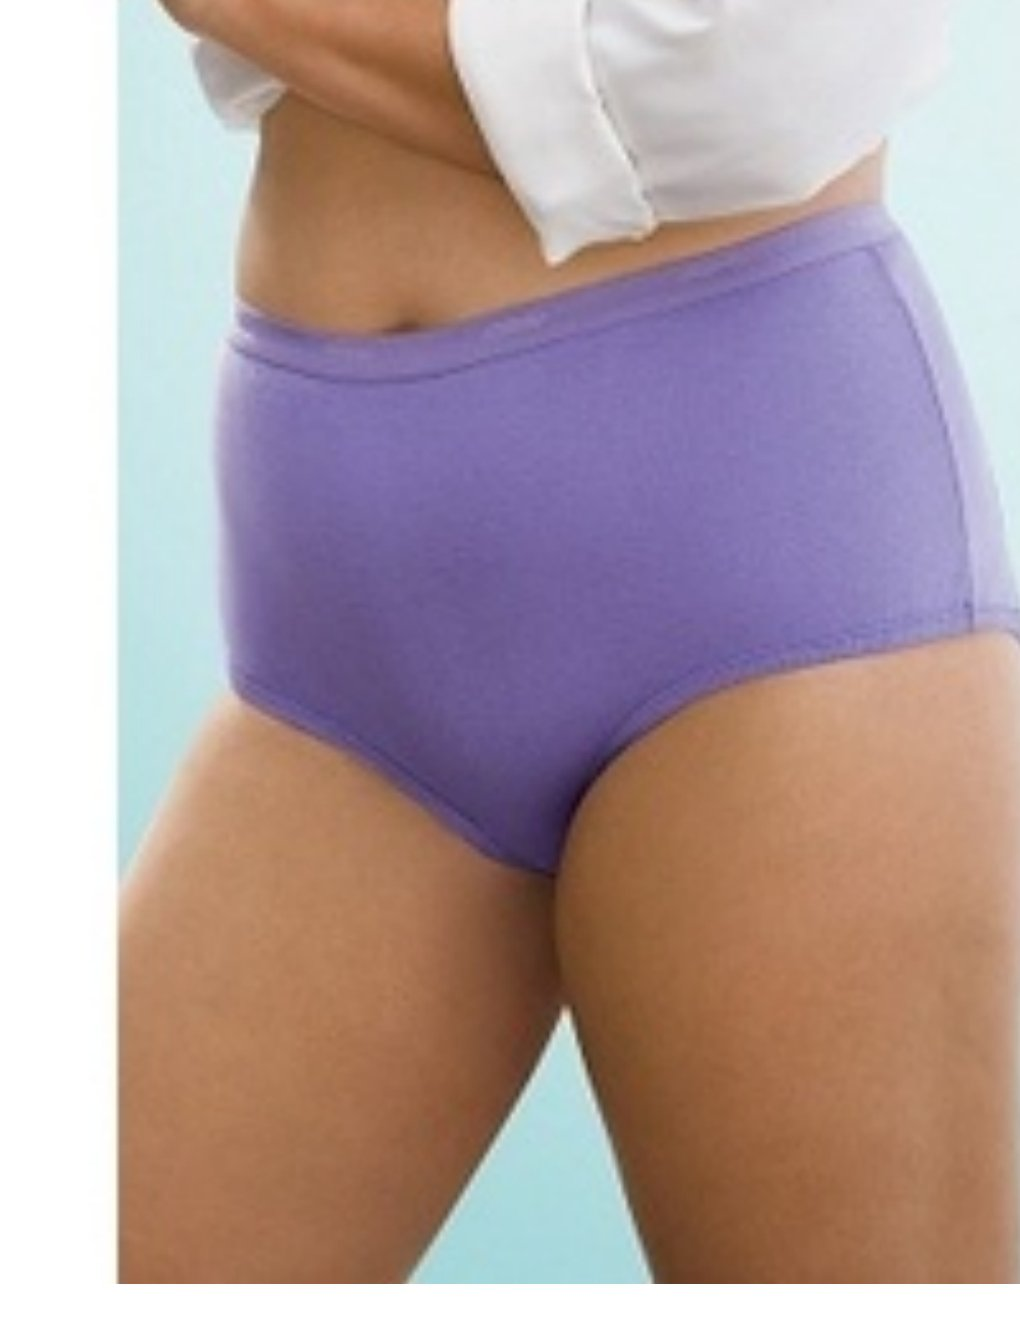 NEW Womens Juniors Playtex Body Beautiful 4 Pair Assorted Cotton Briefs NEW Size 11